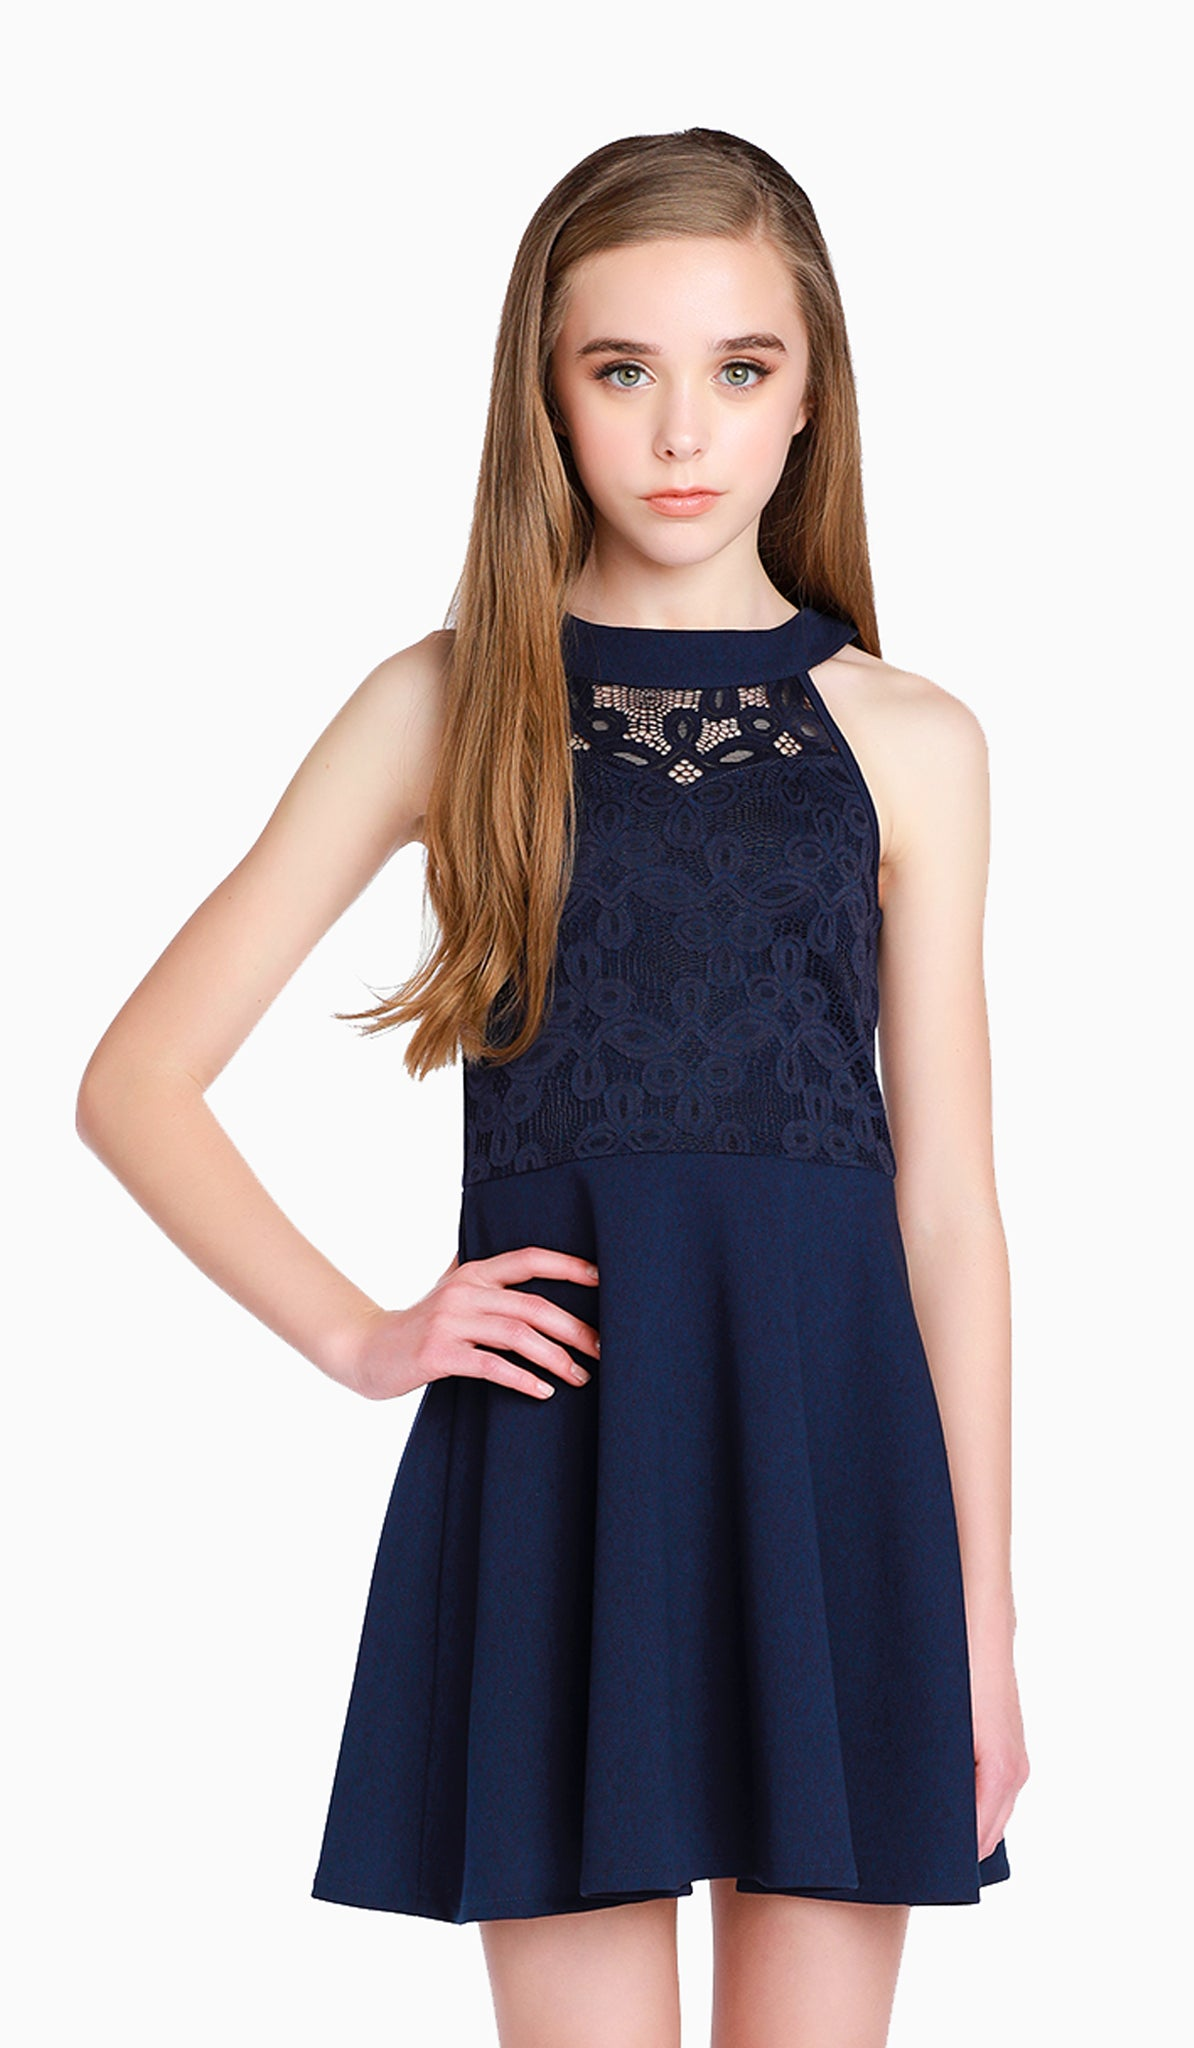 THE AVA DRESS - Sallymiller.com - [variant title] - | Event & Party Dresses for Tween Girls & Juniors | Weddings Dresses, Bat Mitzvah Dresses, Sweet Sixteen Dresses, Graduation Dresses, Birthday Party Dresses, Bar Mitzvah Dresses, Cotillion Dresses